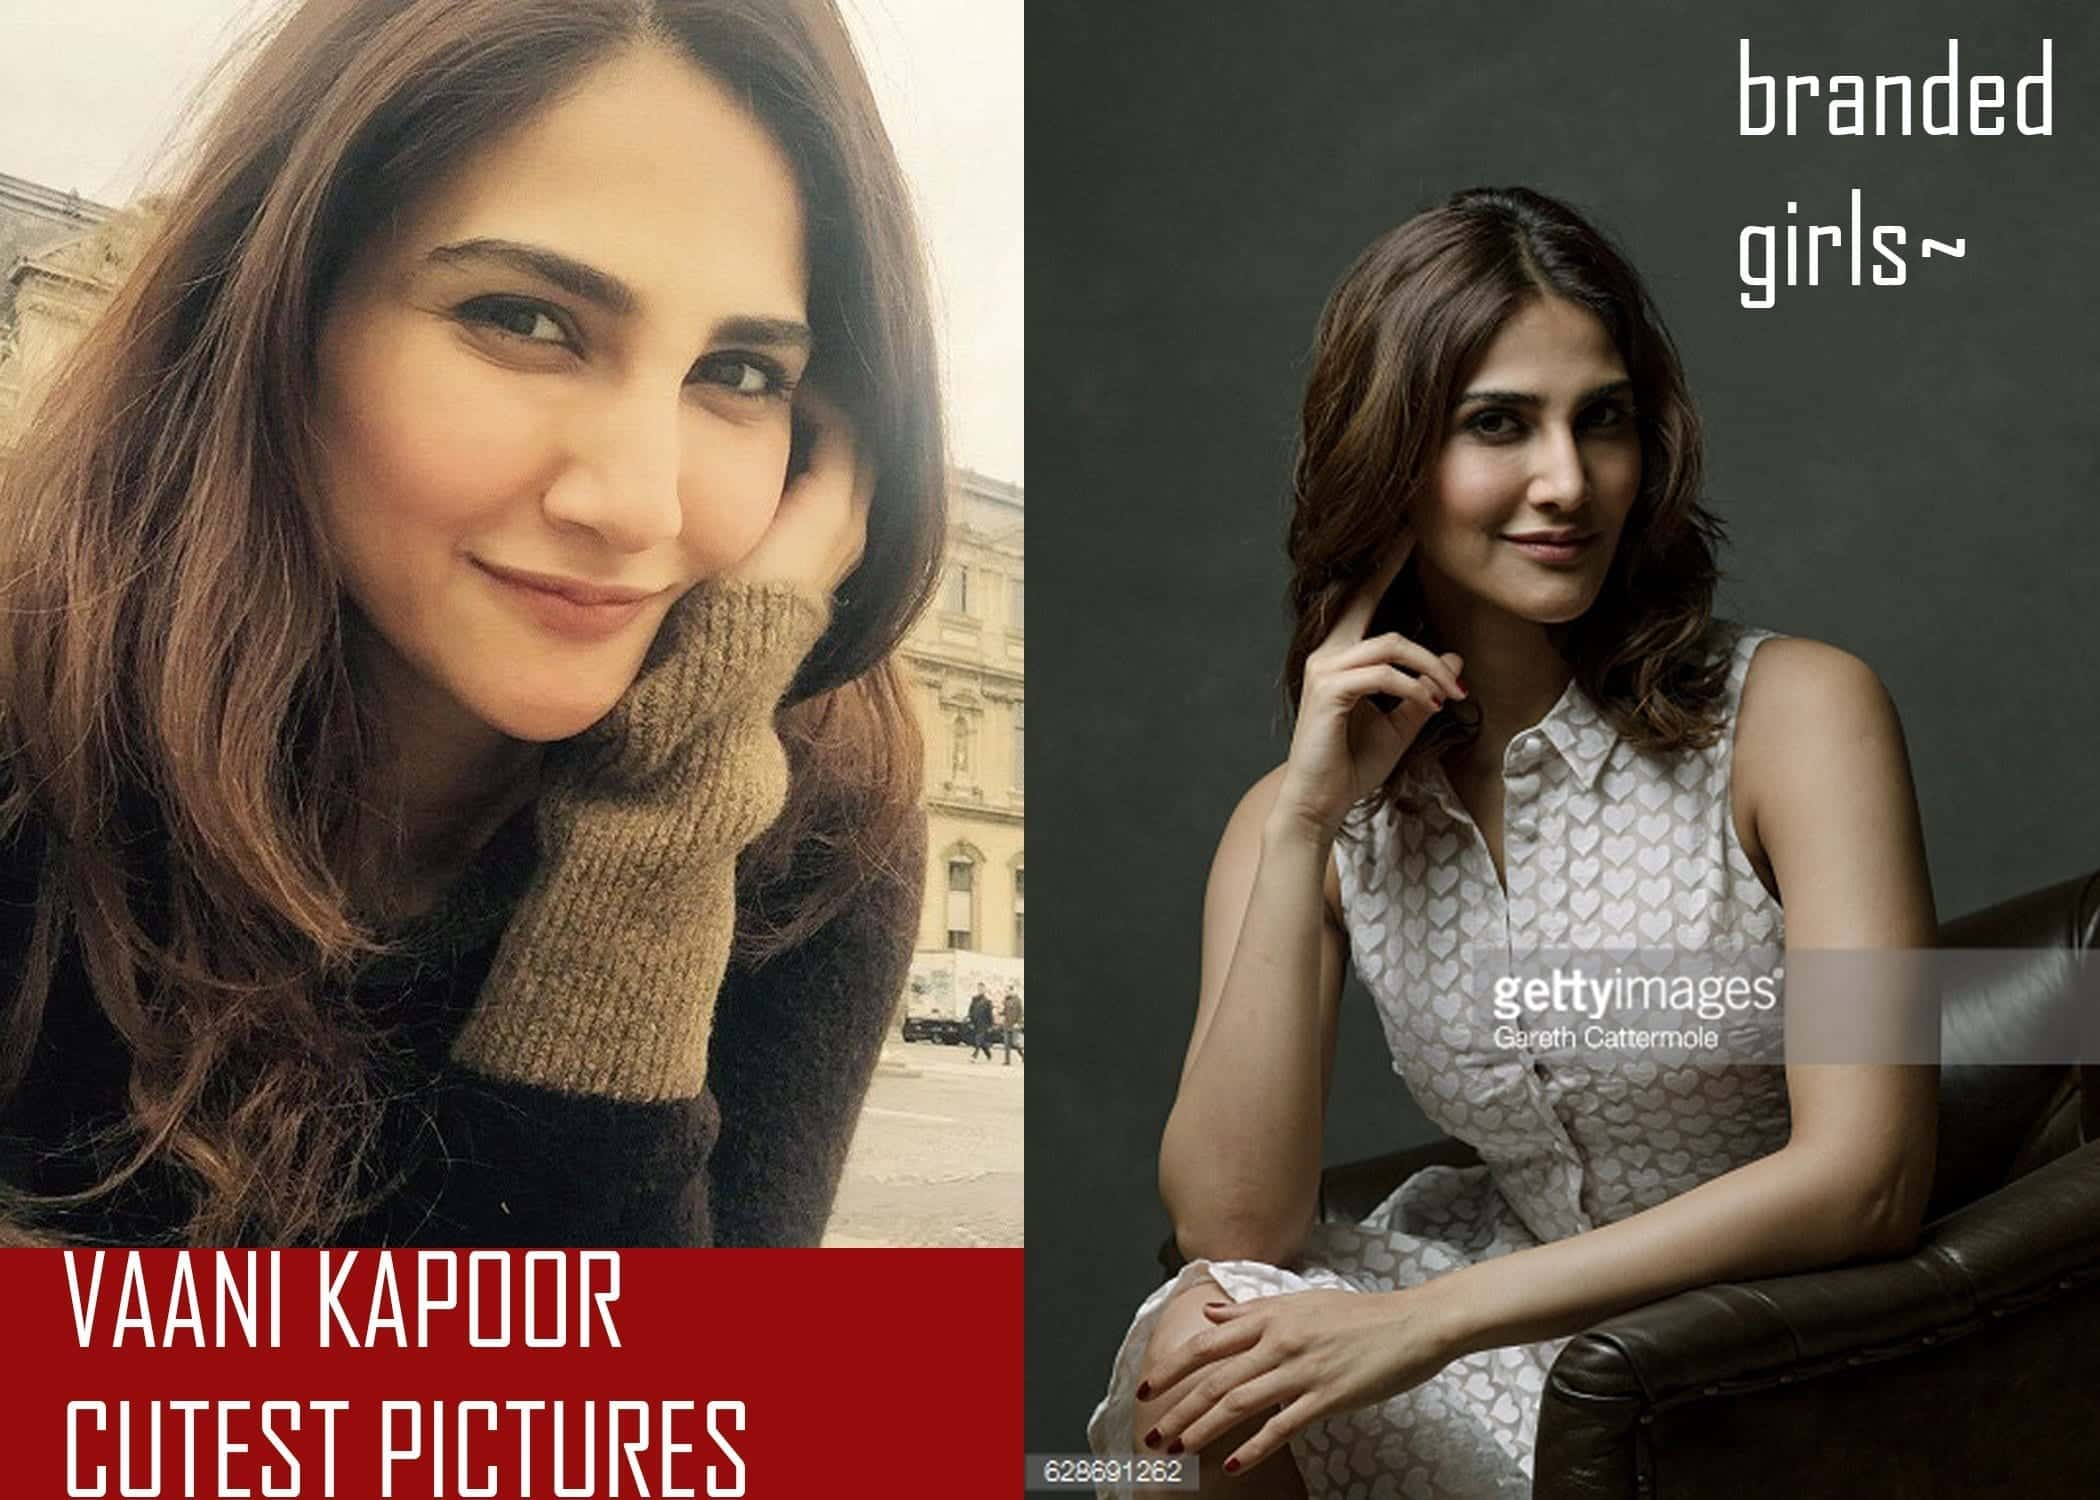 Untitled-1 Vaani Kapoor Pics - 30 Cutest Pictures of Vaani Kapoor